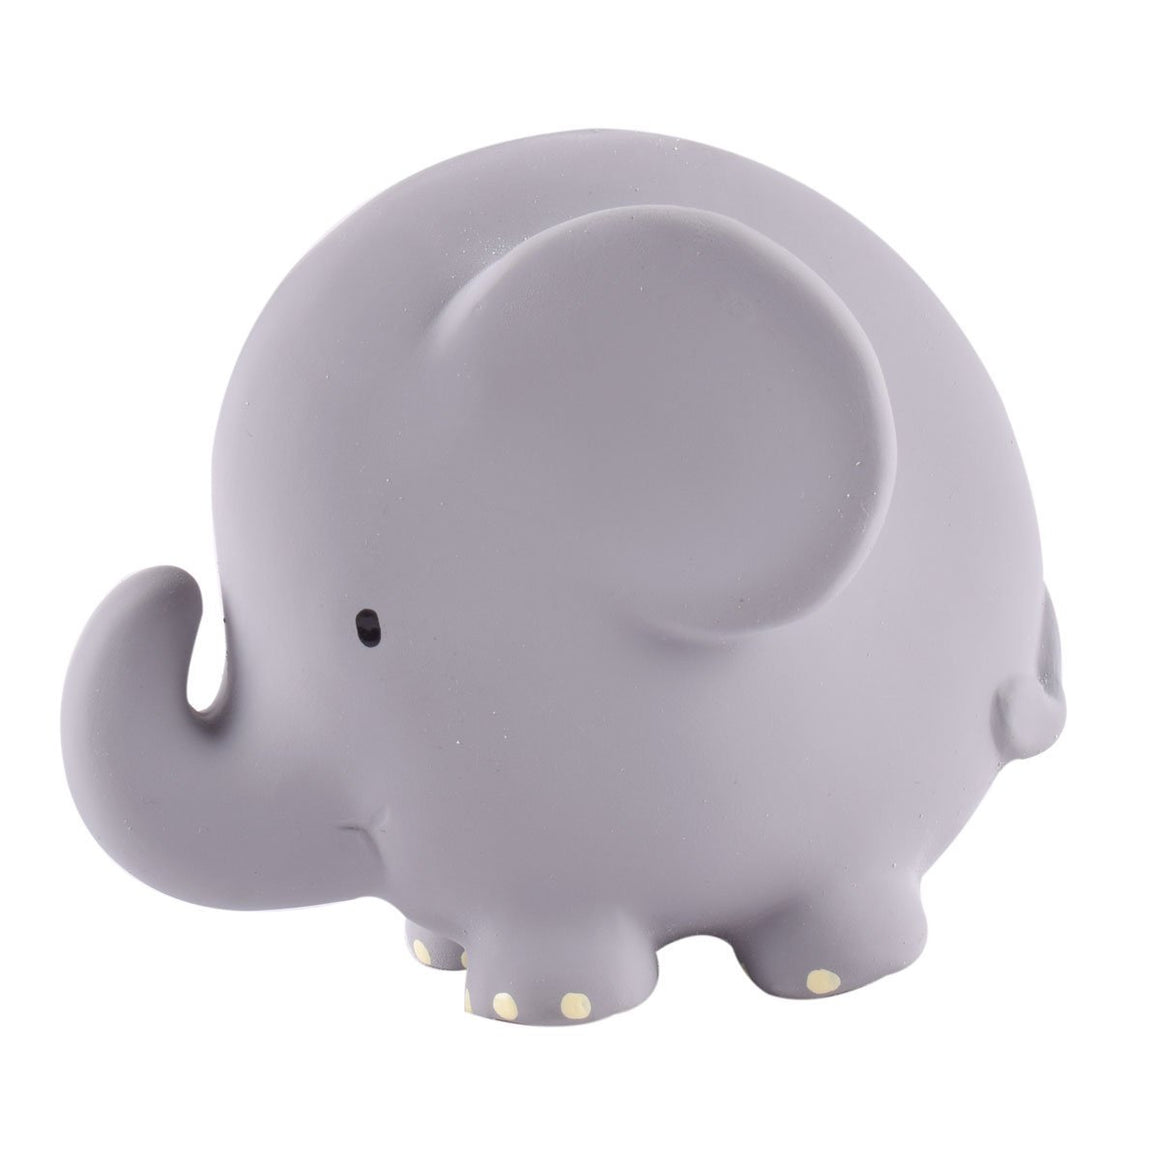 Elephant Rattle & Teether